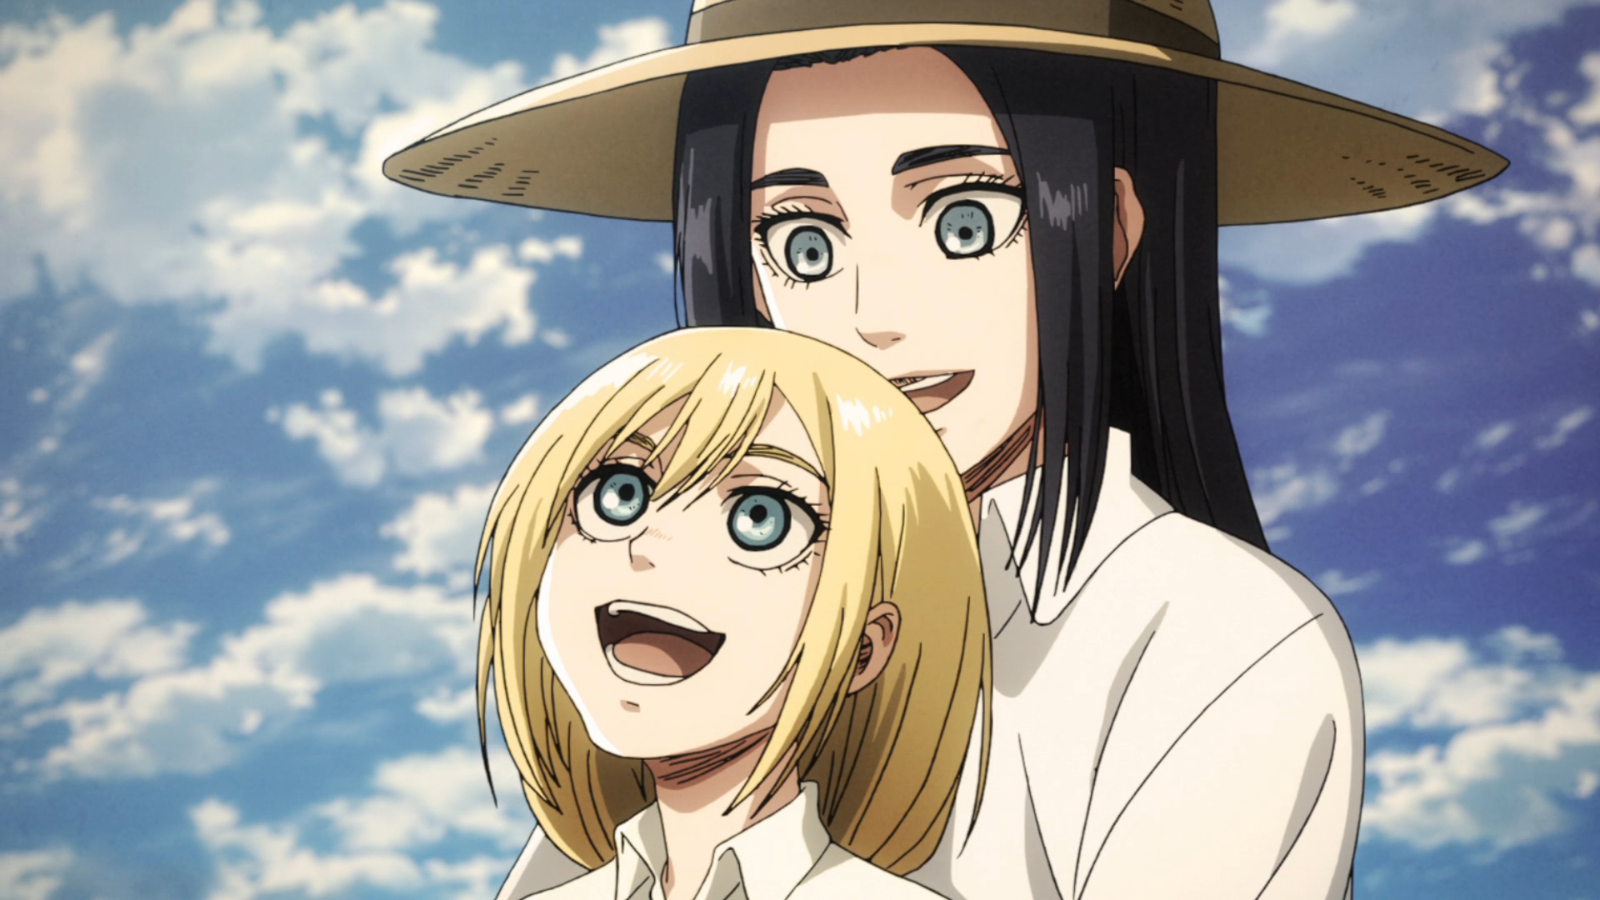 Frieda and Historia Reiss in Attack on Titan